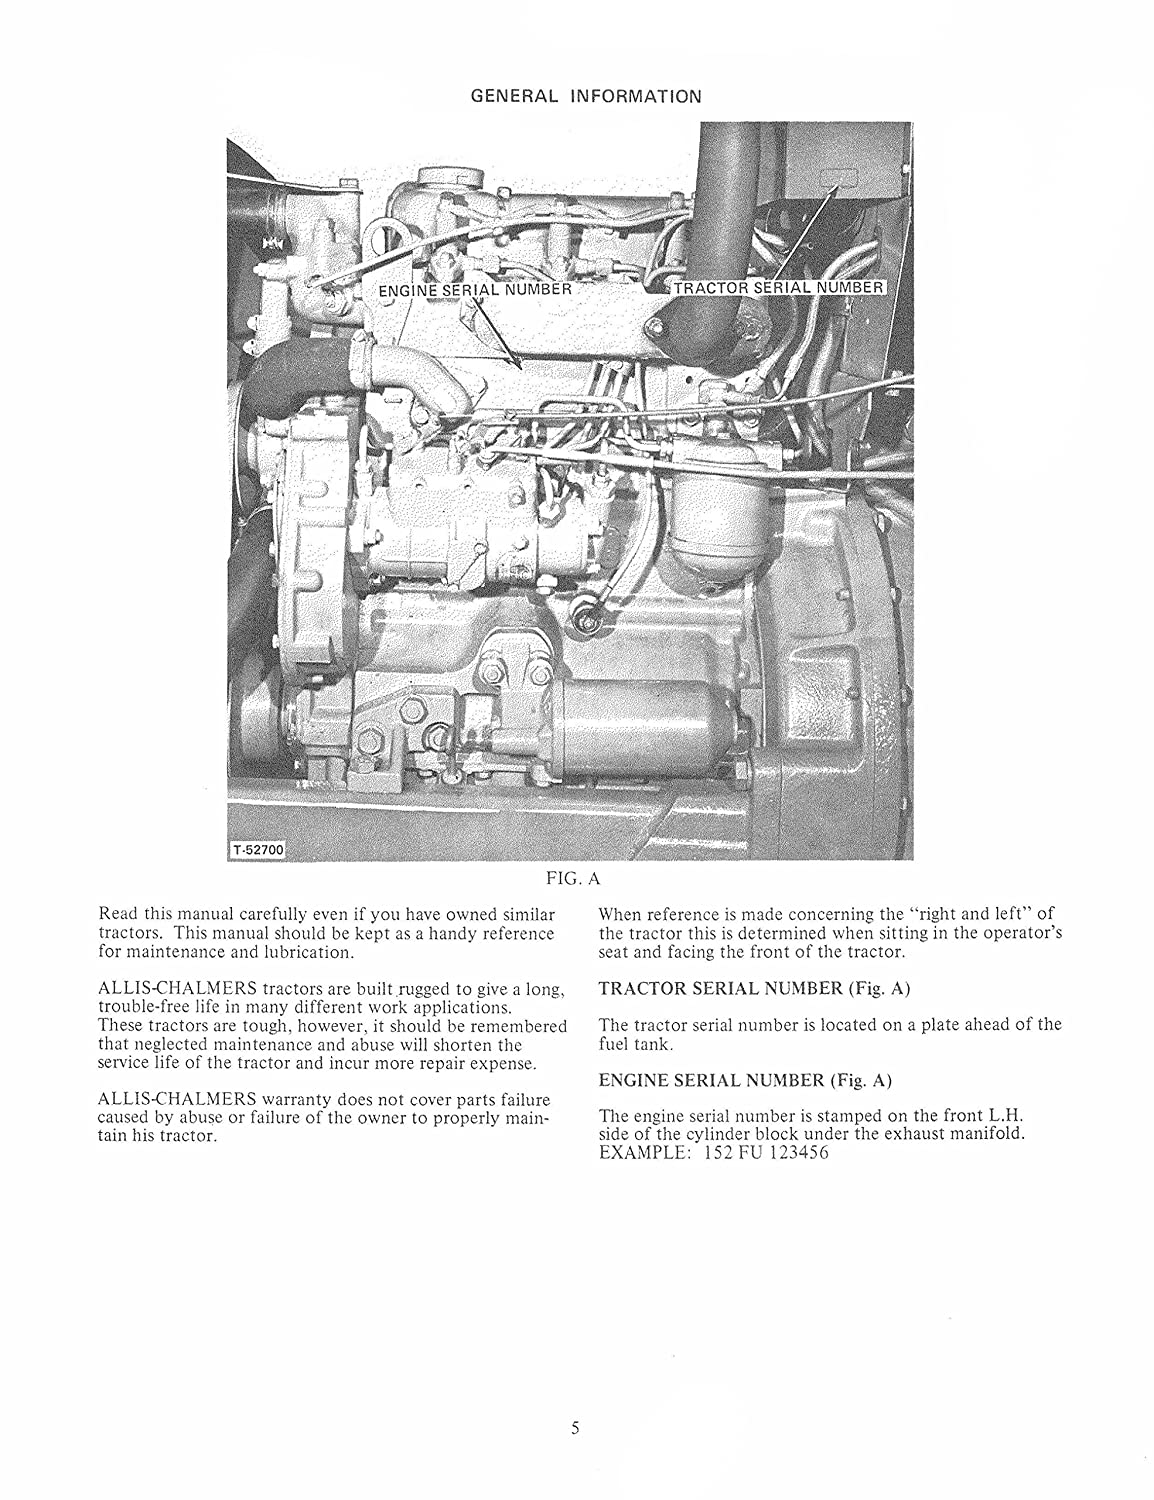 New Operators Manual For Allis Chalmers 160 Tractors Engine Diagram Industrial Scientific